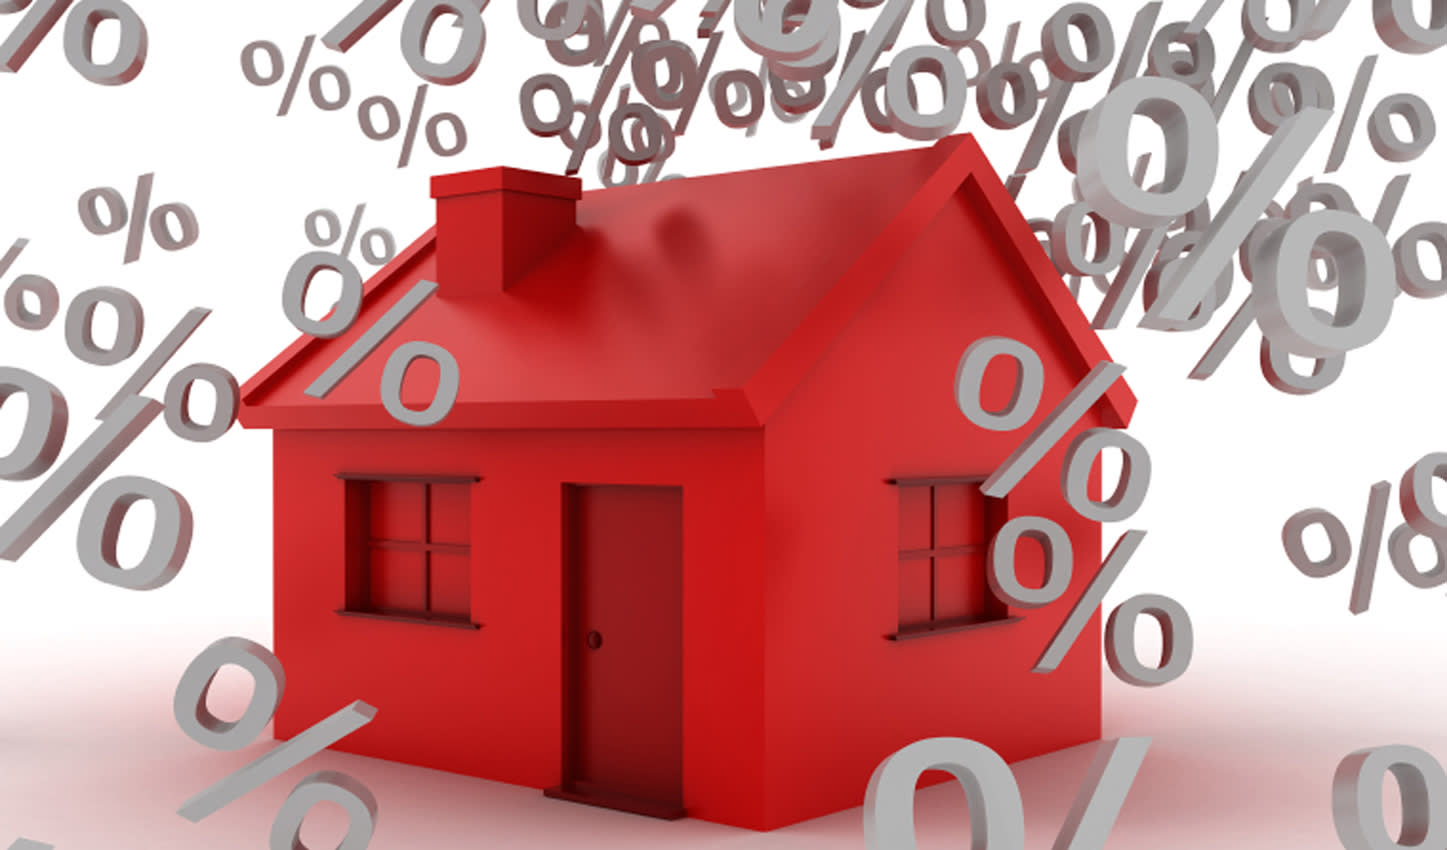 Tracker mortgage rates fall as competition increases